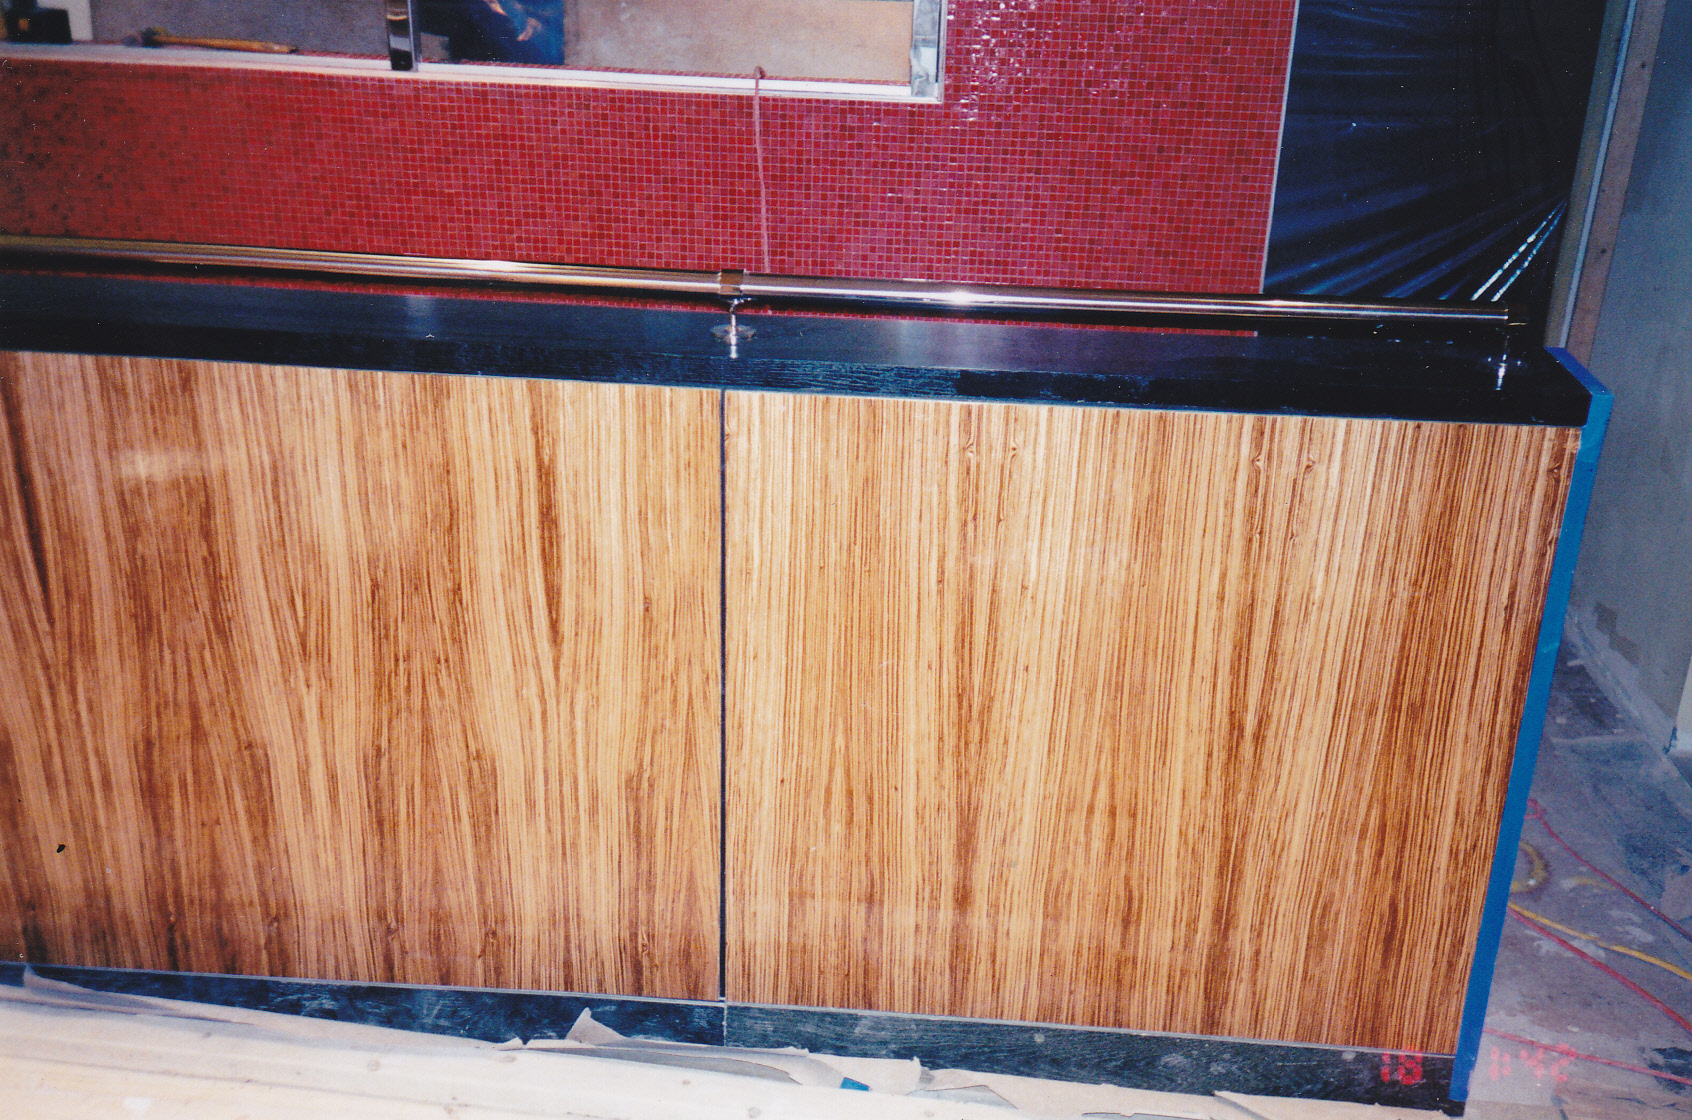 zebrawood veneered partition installed